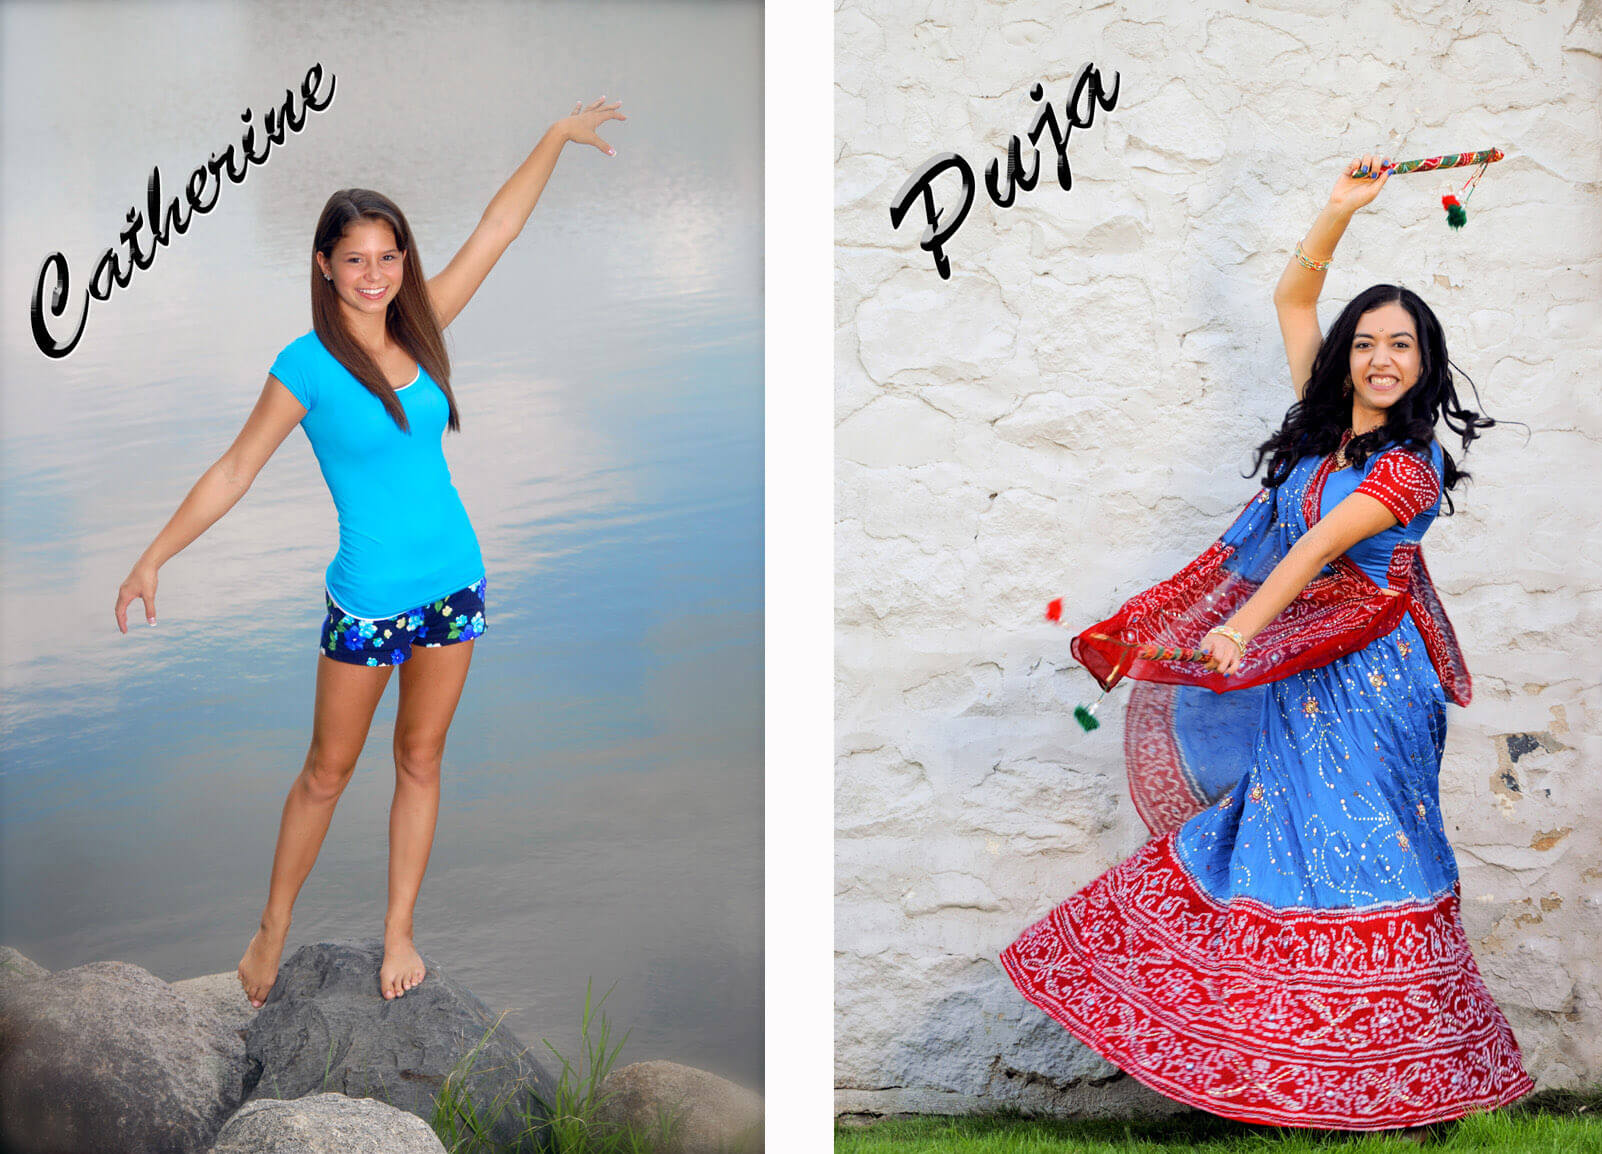 Two photos featuring Michigan seniors showcase their dancing skills on locations and out of context.